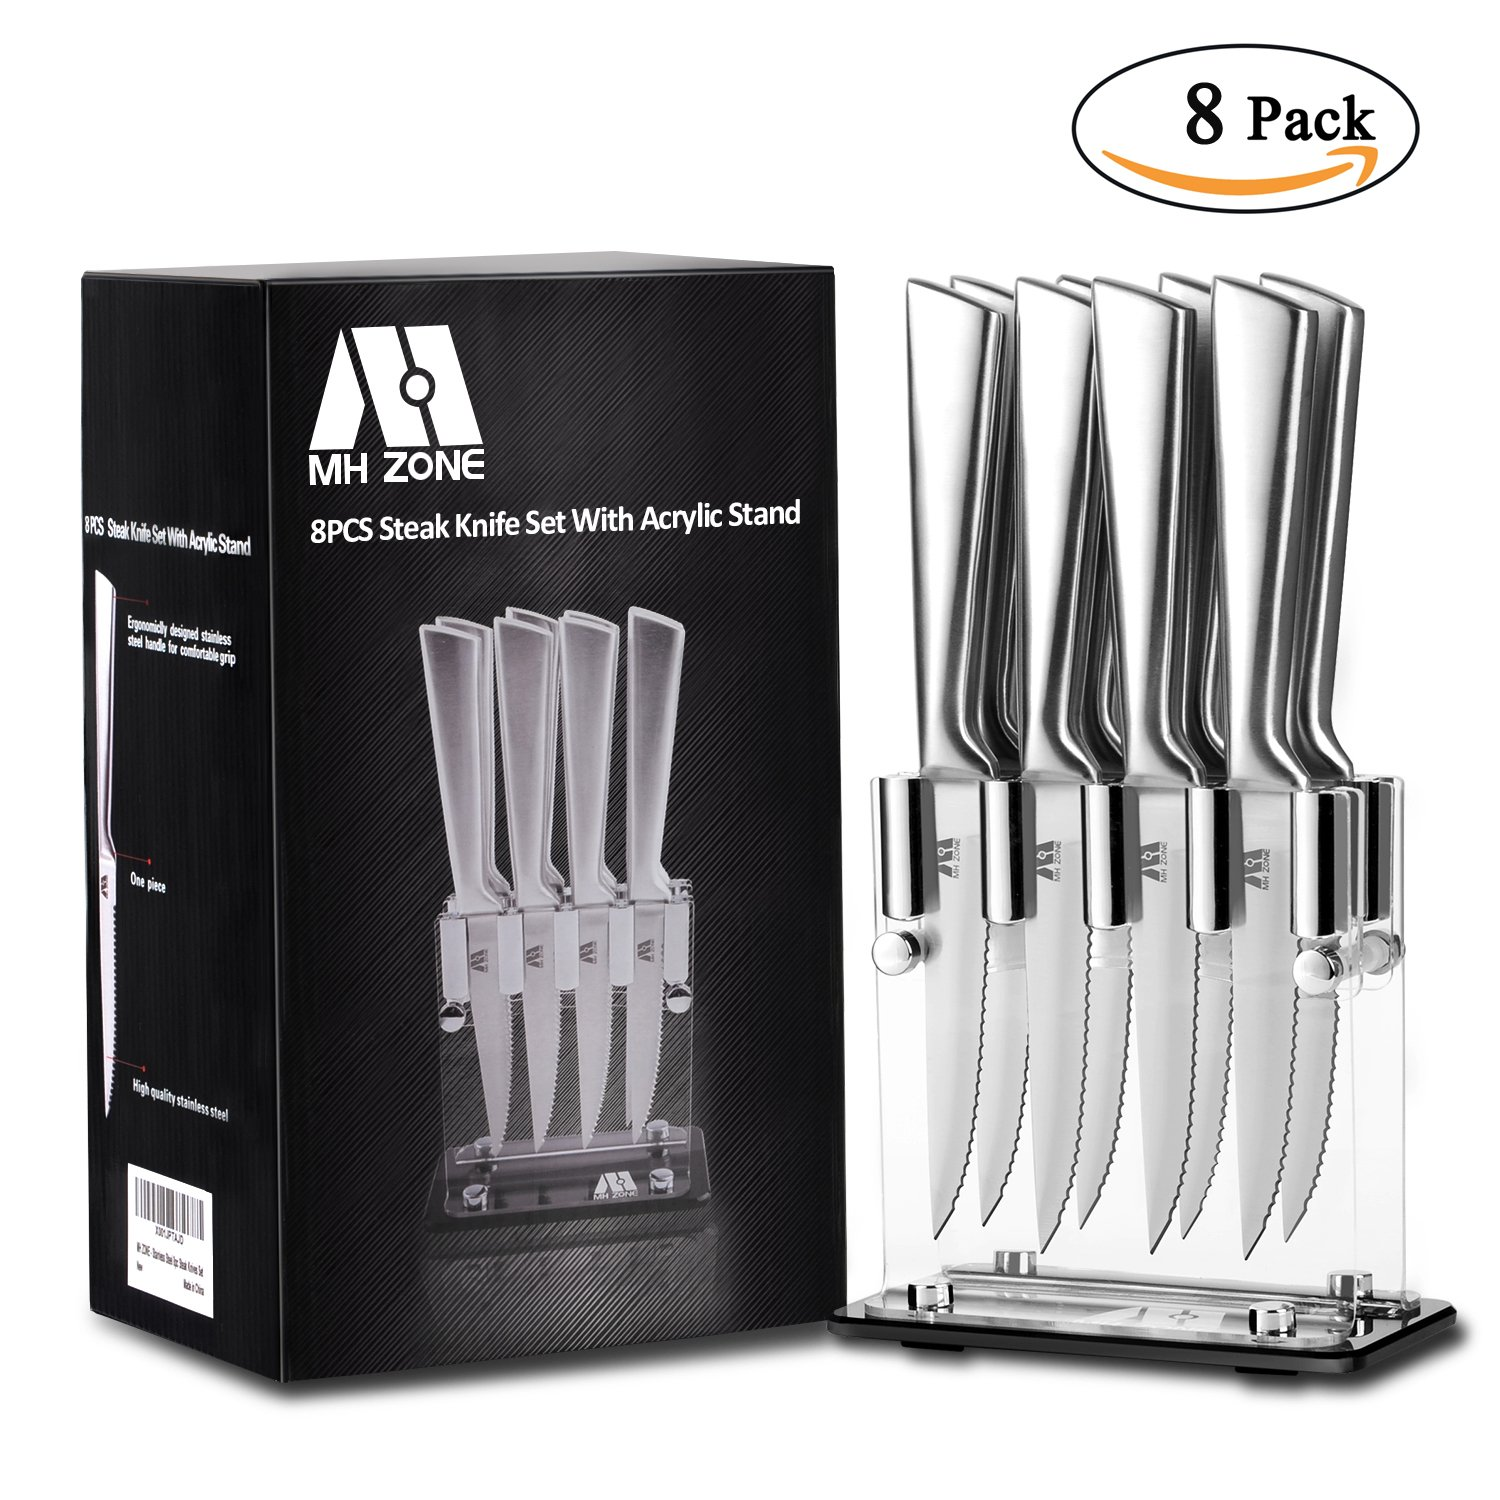 Steak Knife Set, MH ZONE Premium Stainless Steel Steak Knife Set of 8 with Acrylic Block, Perfect Gift